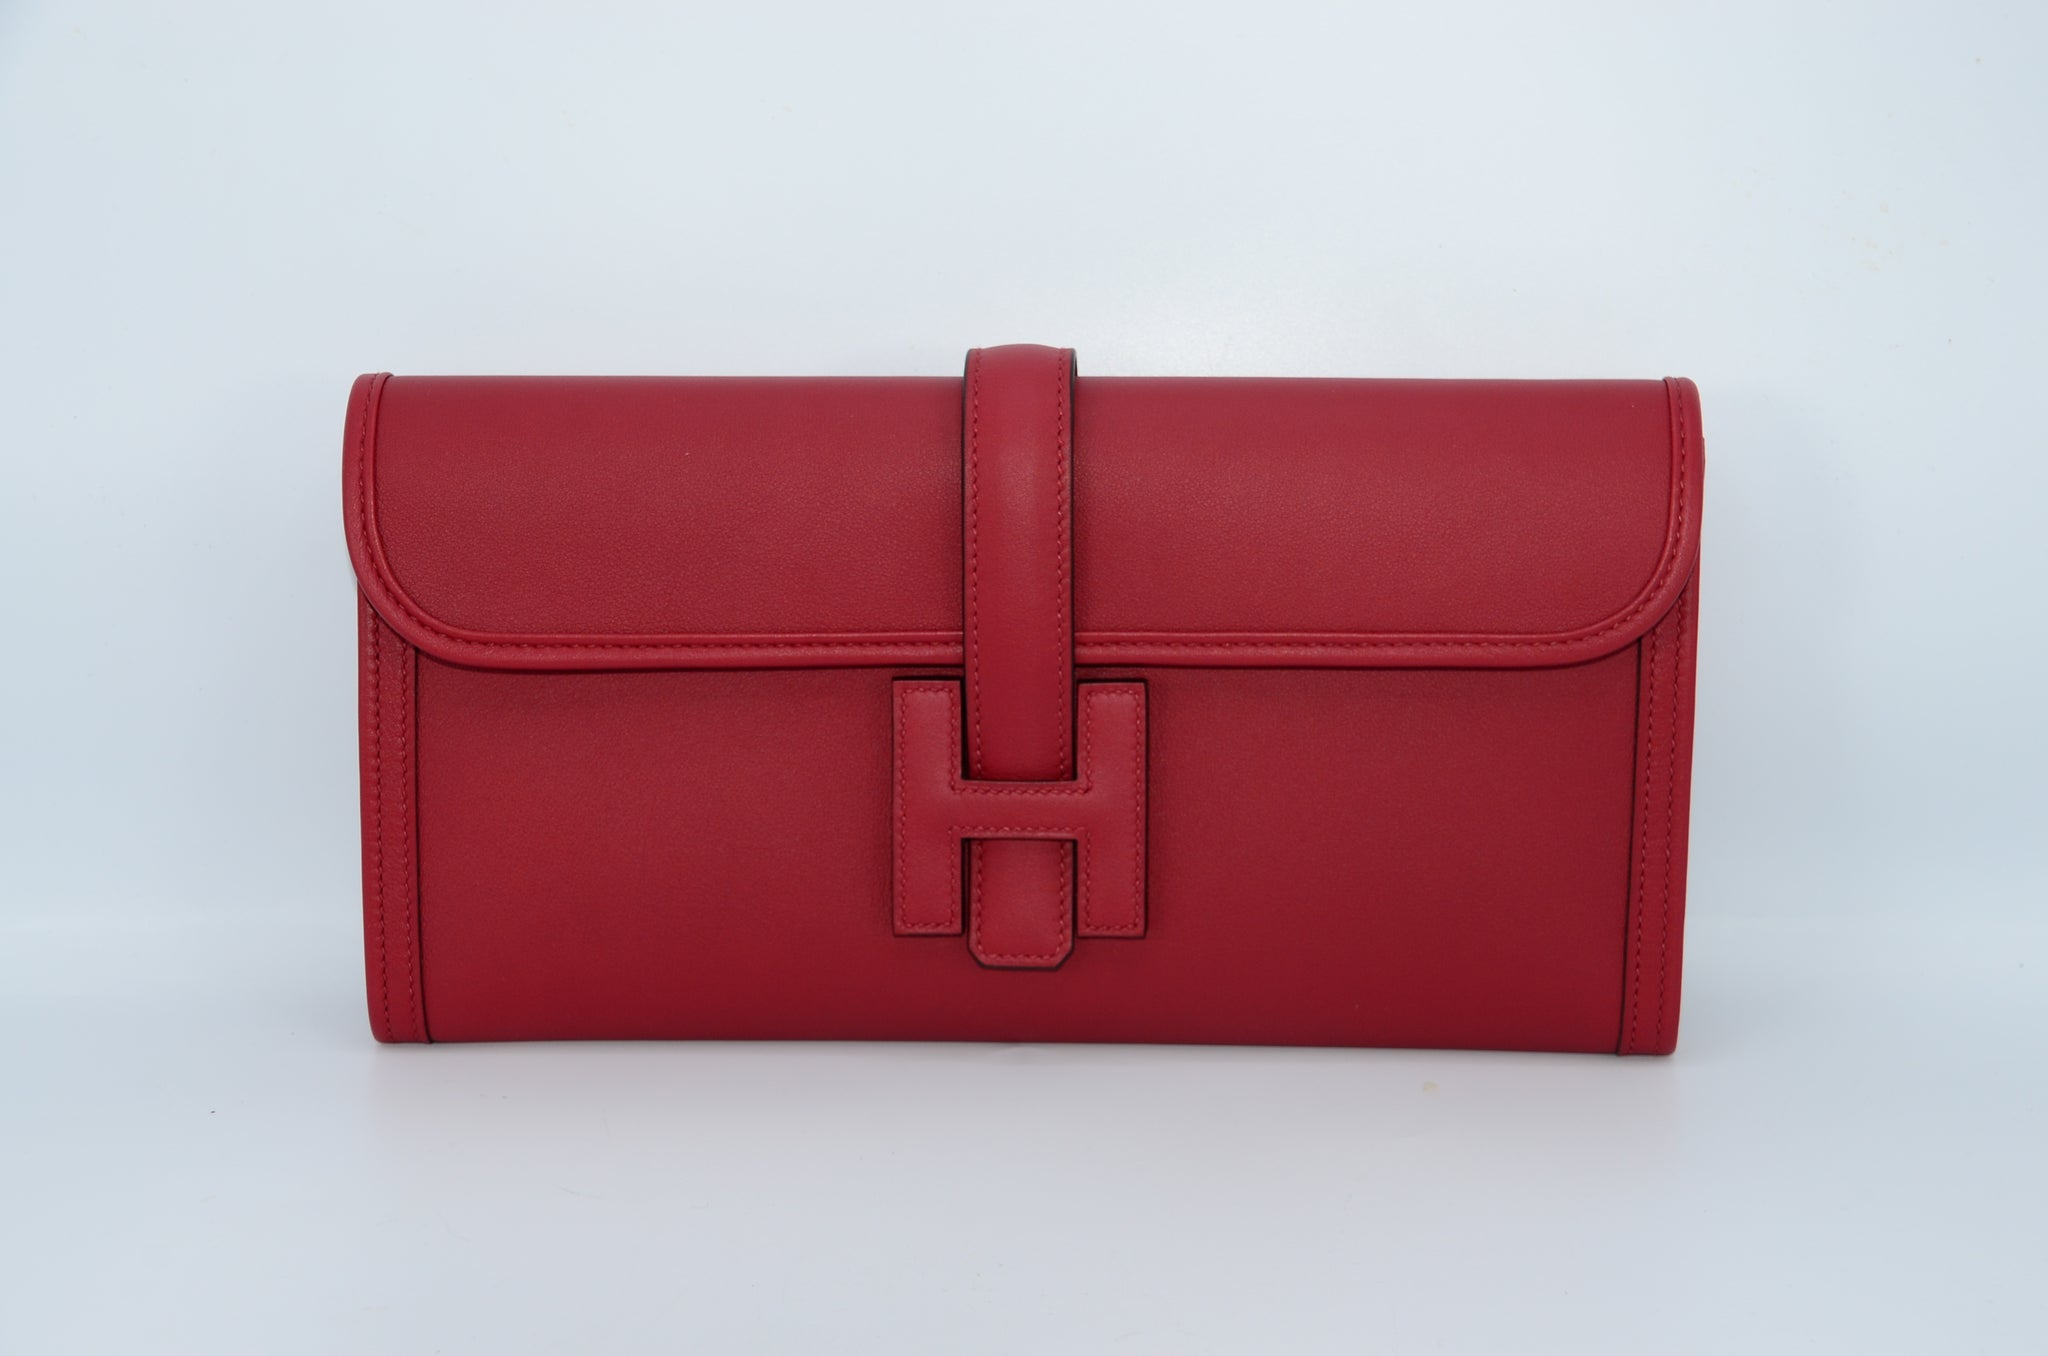 Hermès Jige Elan Pochette - Iconics Preloved Luxury